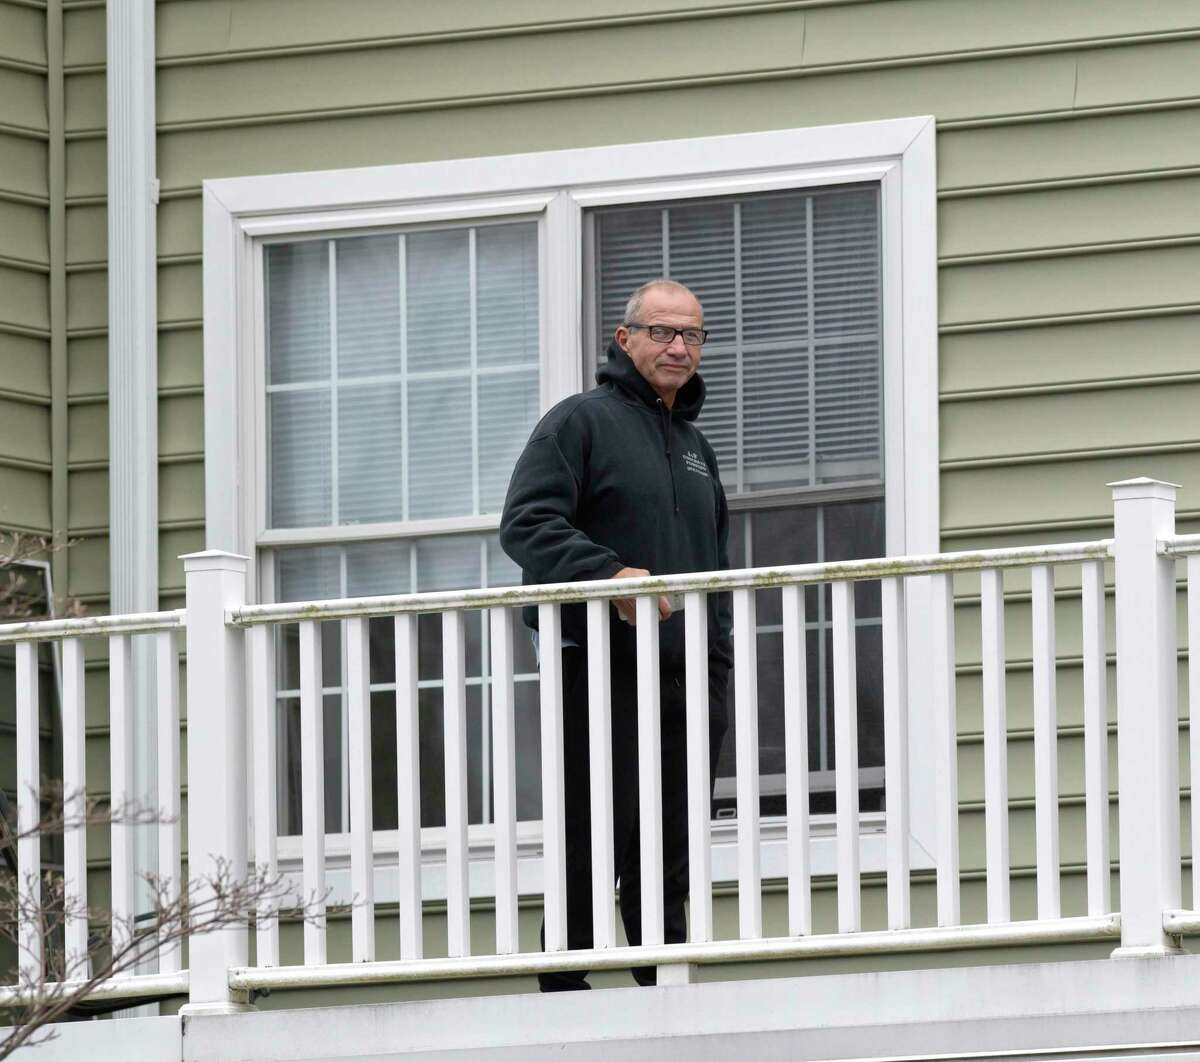 Bill Mason hopped a railing so he could be with his mother in her final hours. Because Ridgefield Crossings, her assisted-living facility, has been locked down to visitors, Bill Mason, in his 60s, said he climbed onto the balcony - and set up a chair outside her window Tuesday to be with her at the end.